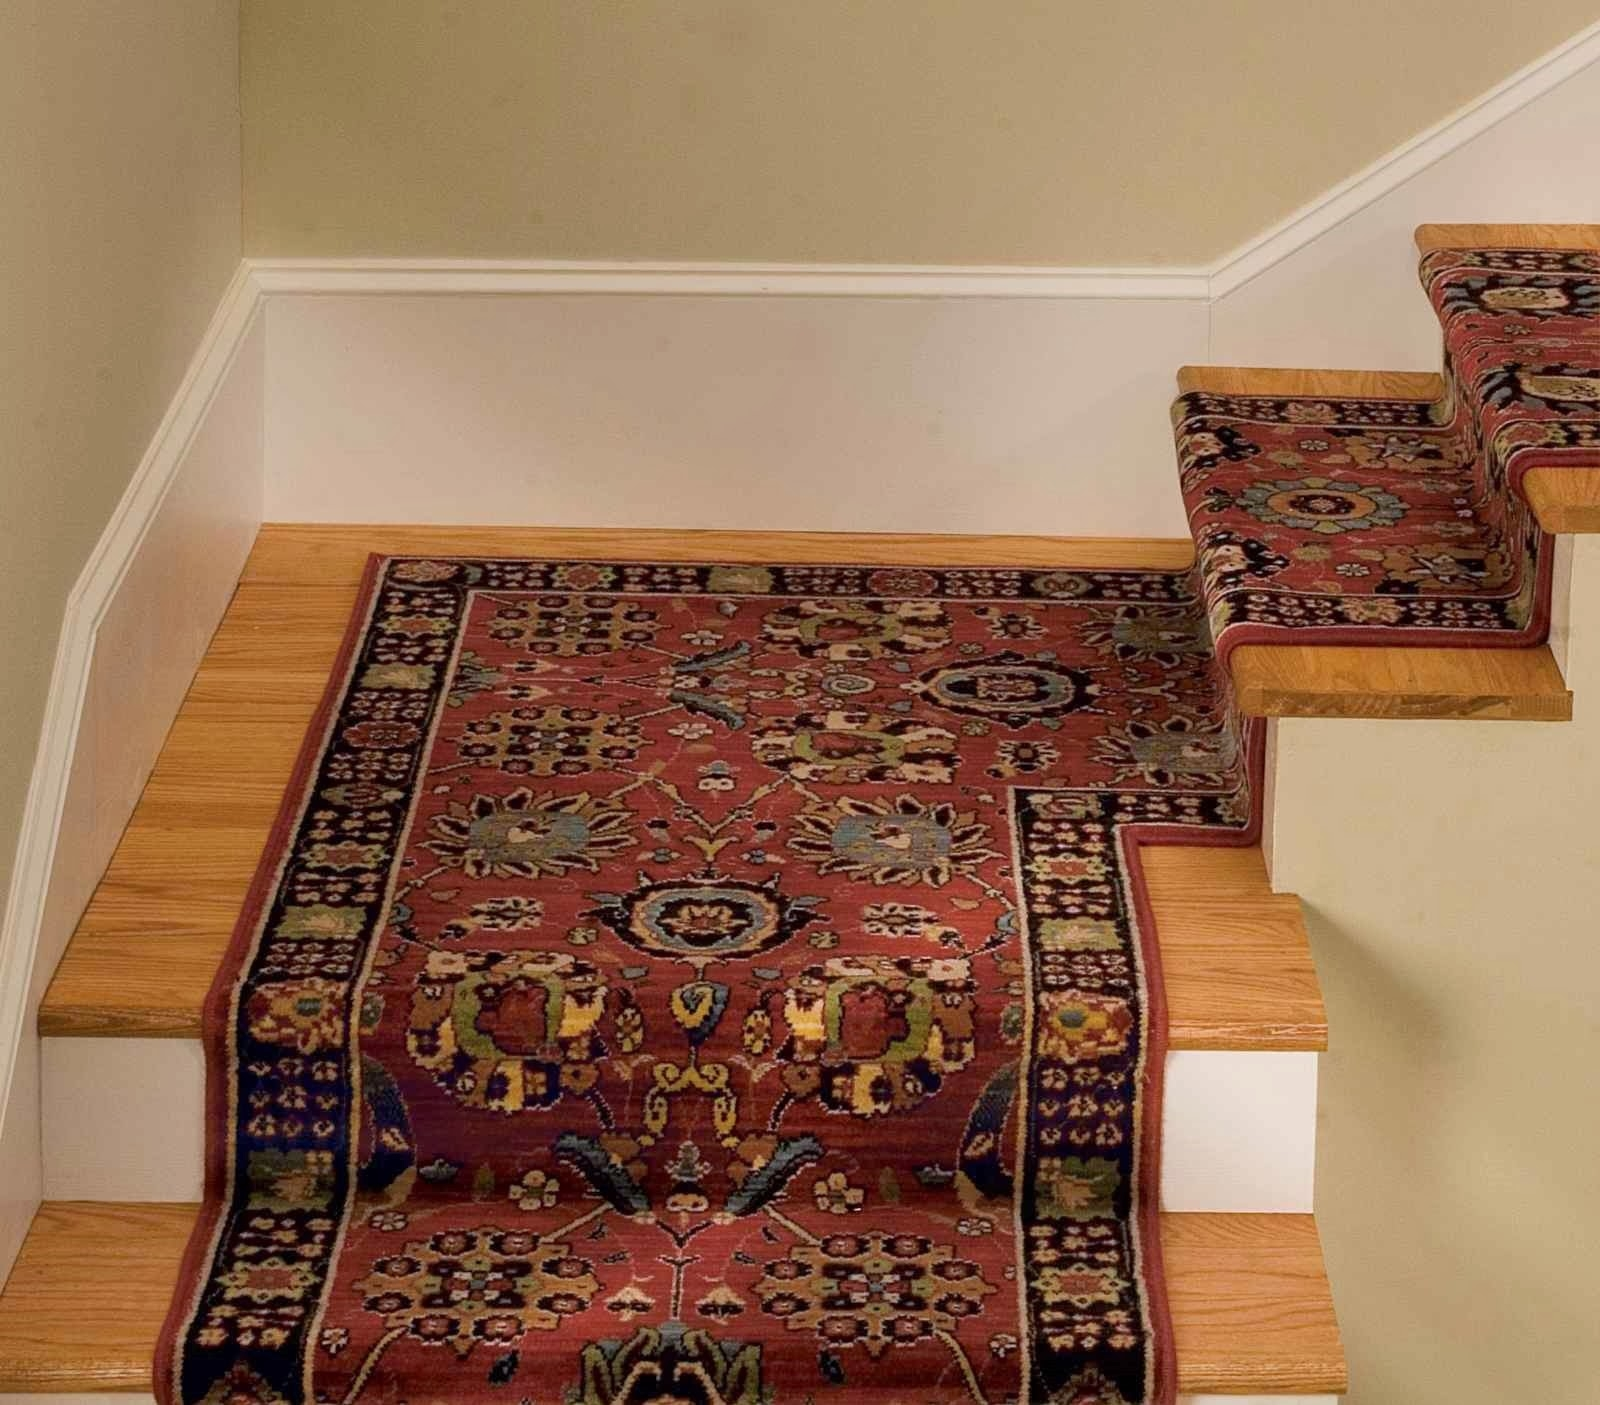 Staircase Tread Rugs Roll Rug Runner Area Rugs Stair Treads For 8 Inch Stair Tread Rugs (Image 15 of 15)